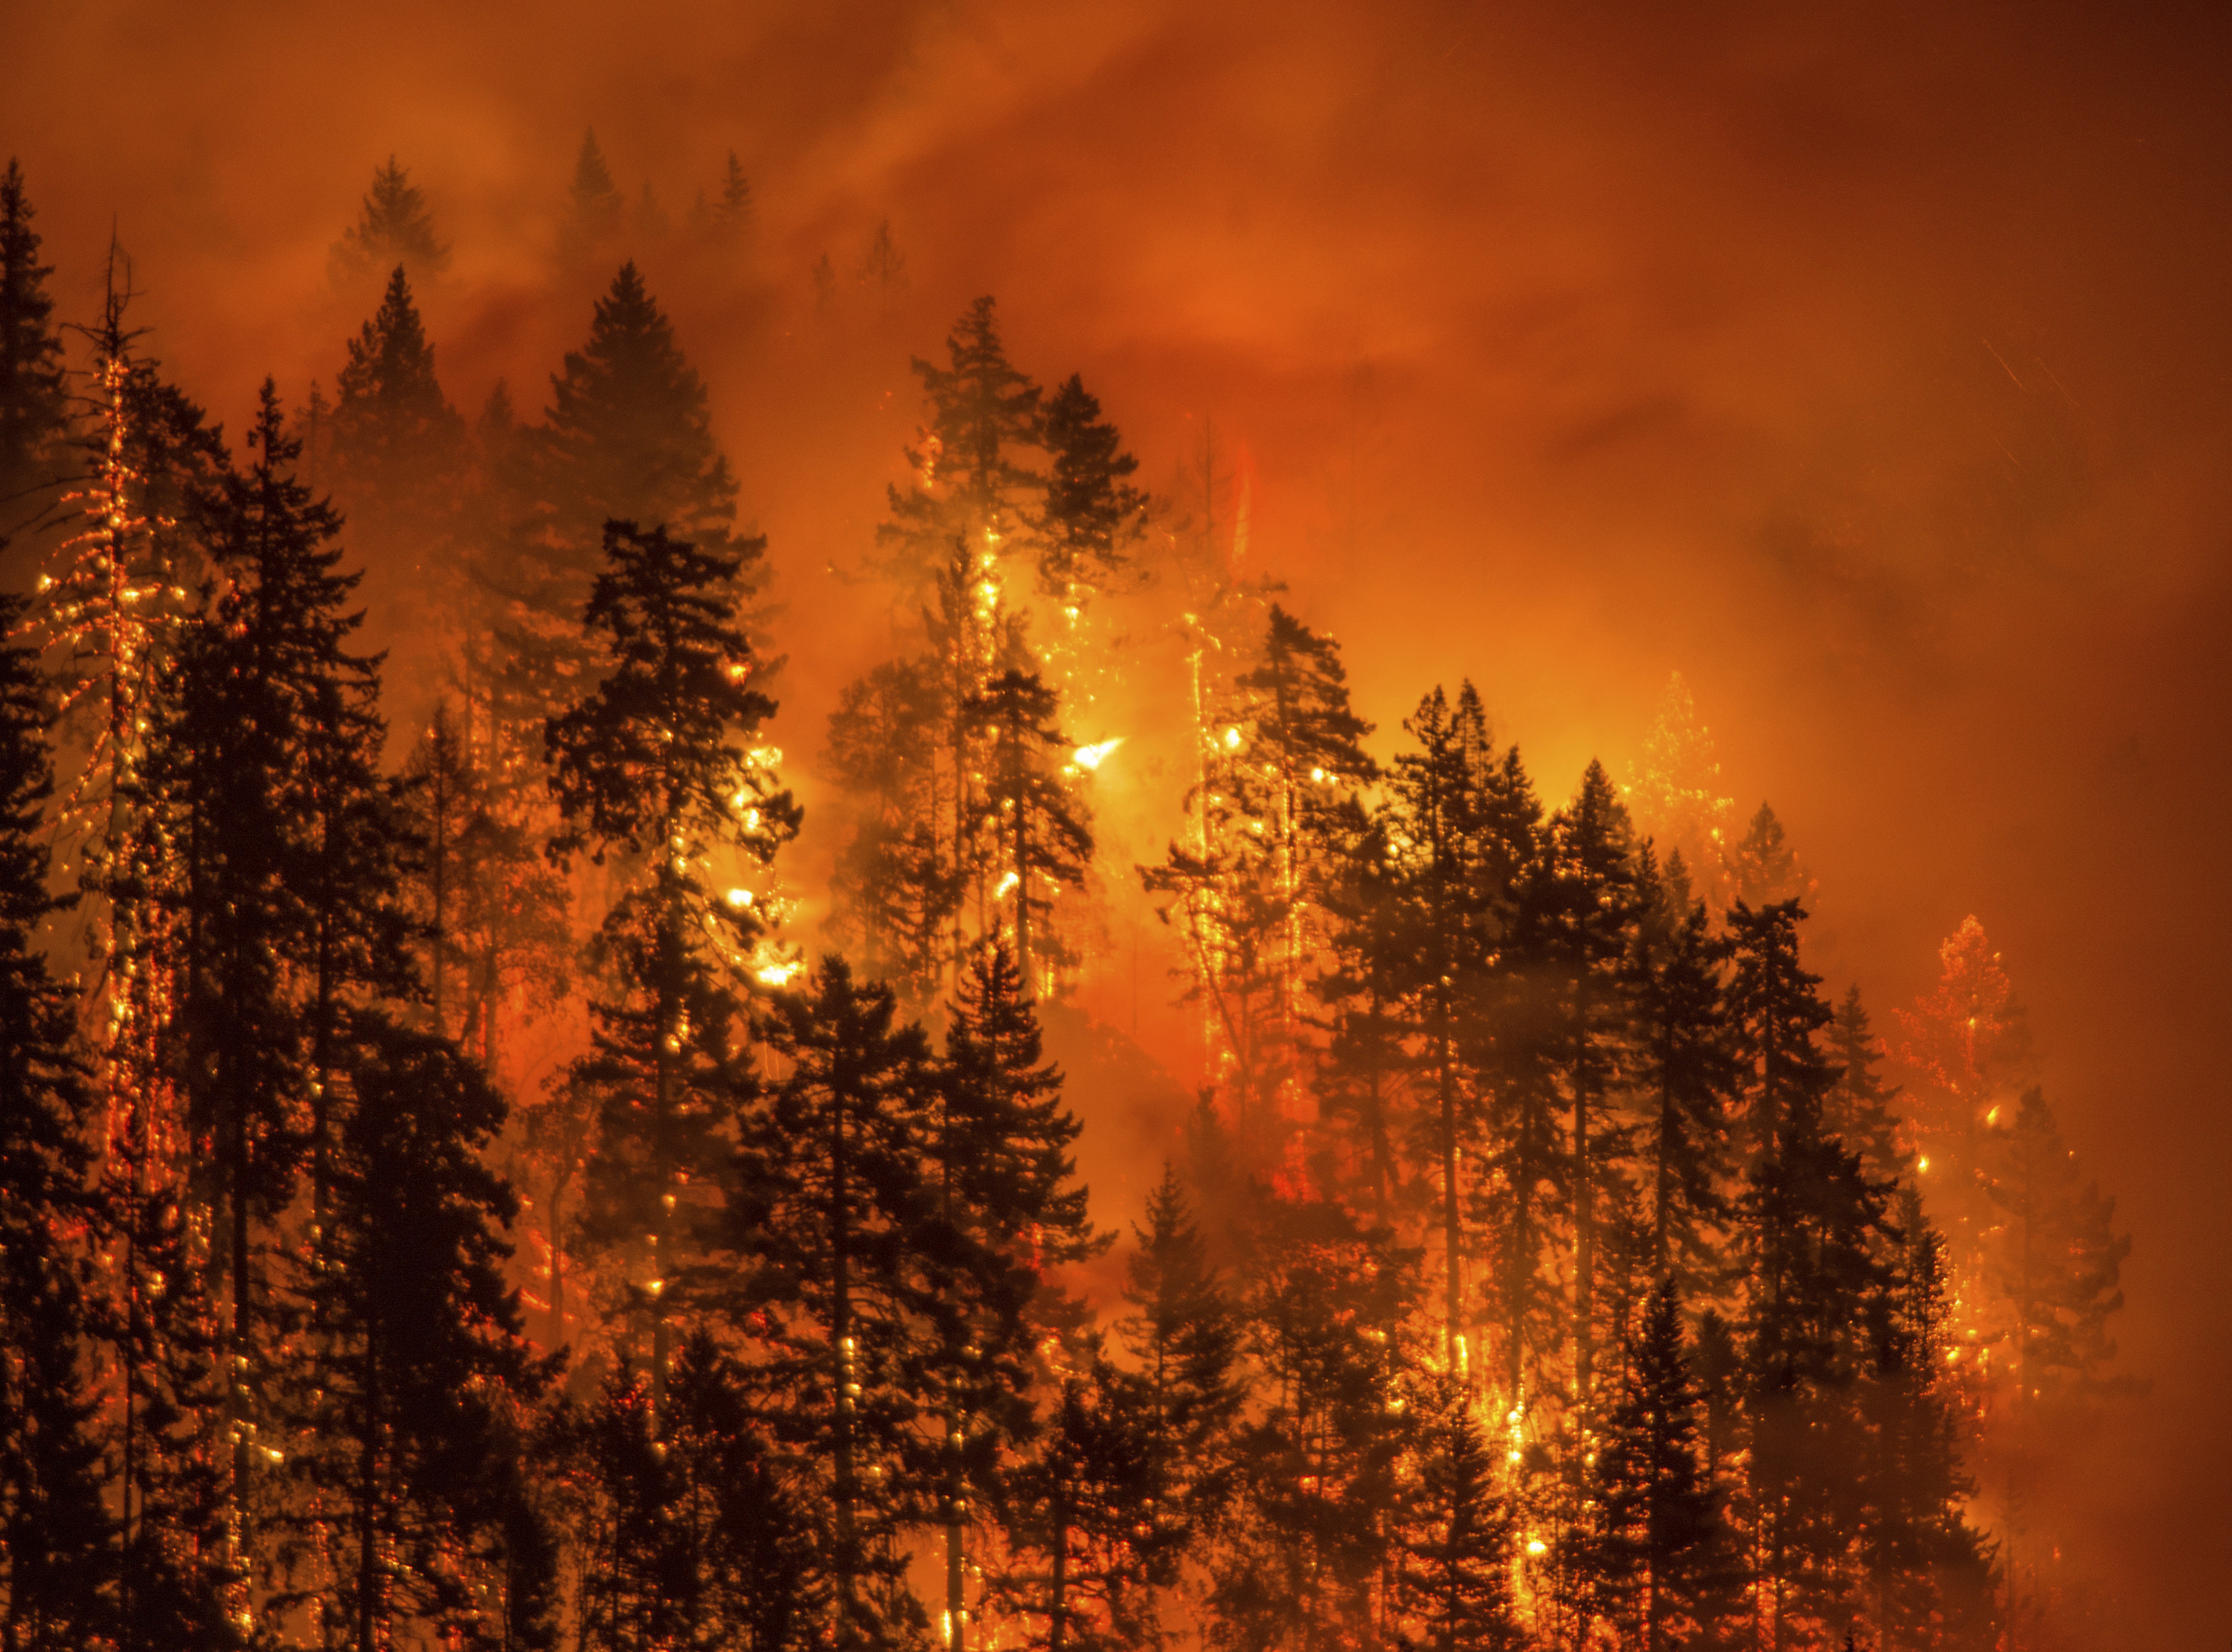 A wildfire as seen from near Stevenson Wash., across the Columbia River, burning in the Columbia River Gorge. (AAP)